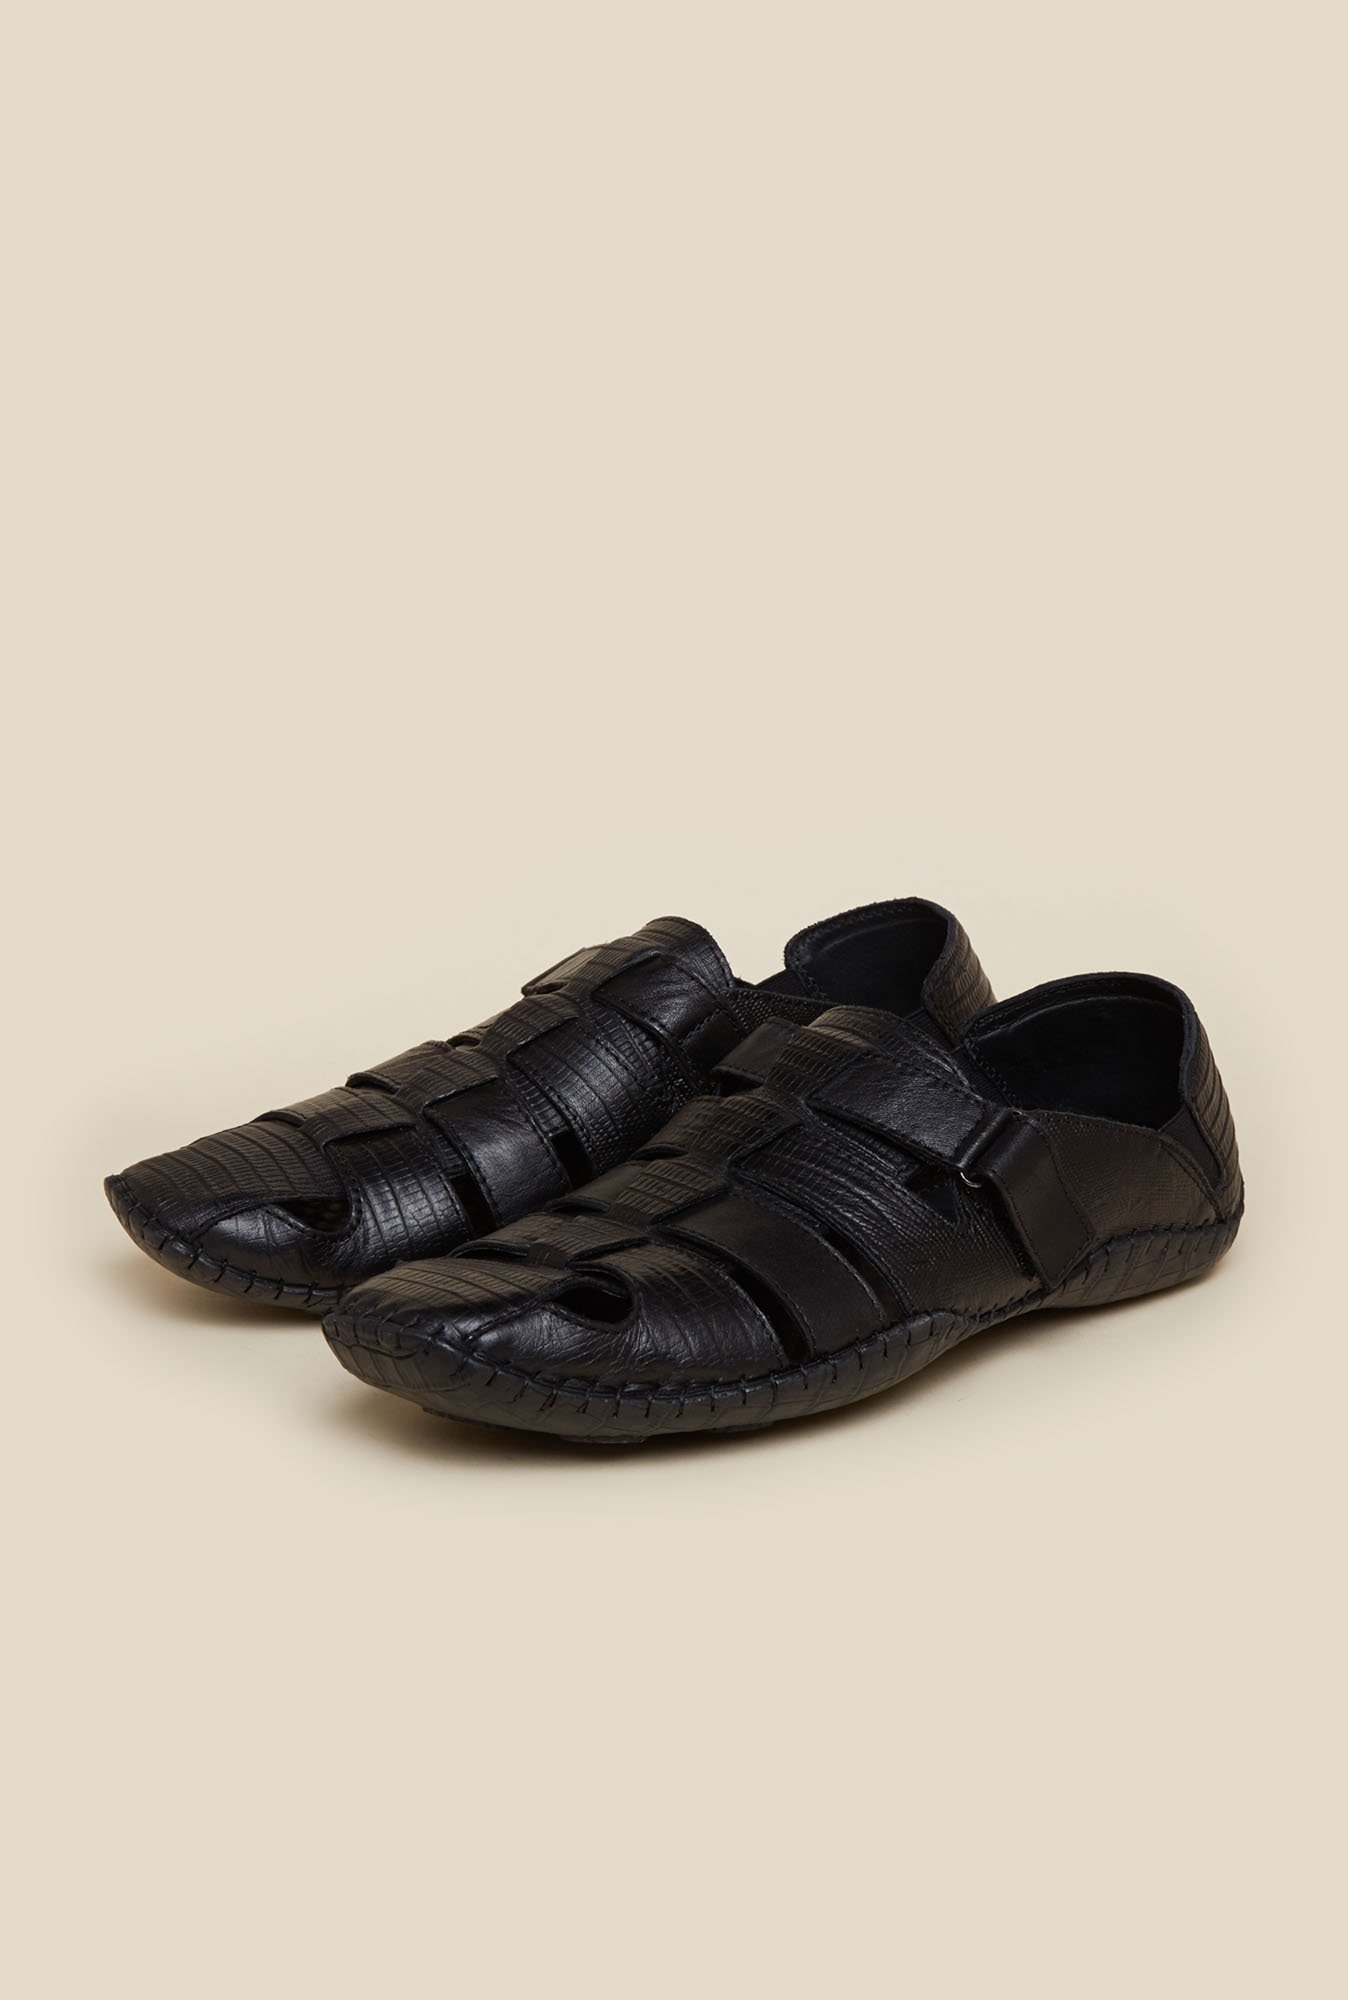 J. Fontini by Mochi Black Leather Fisherman Sandals